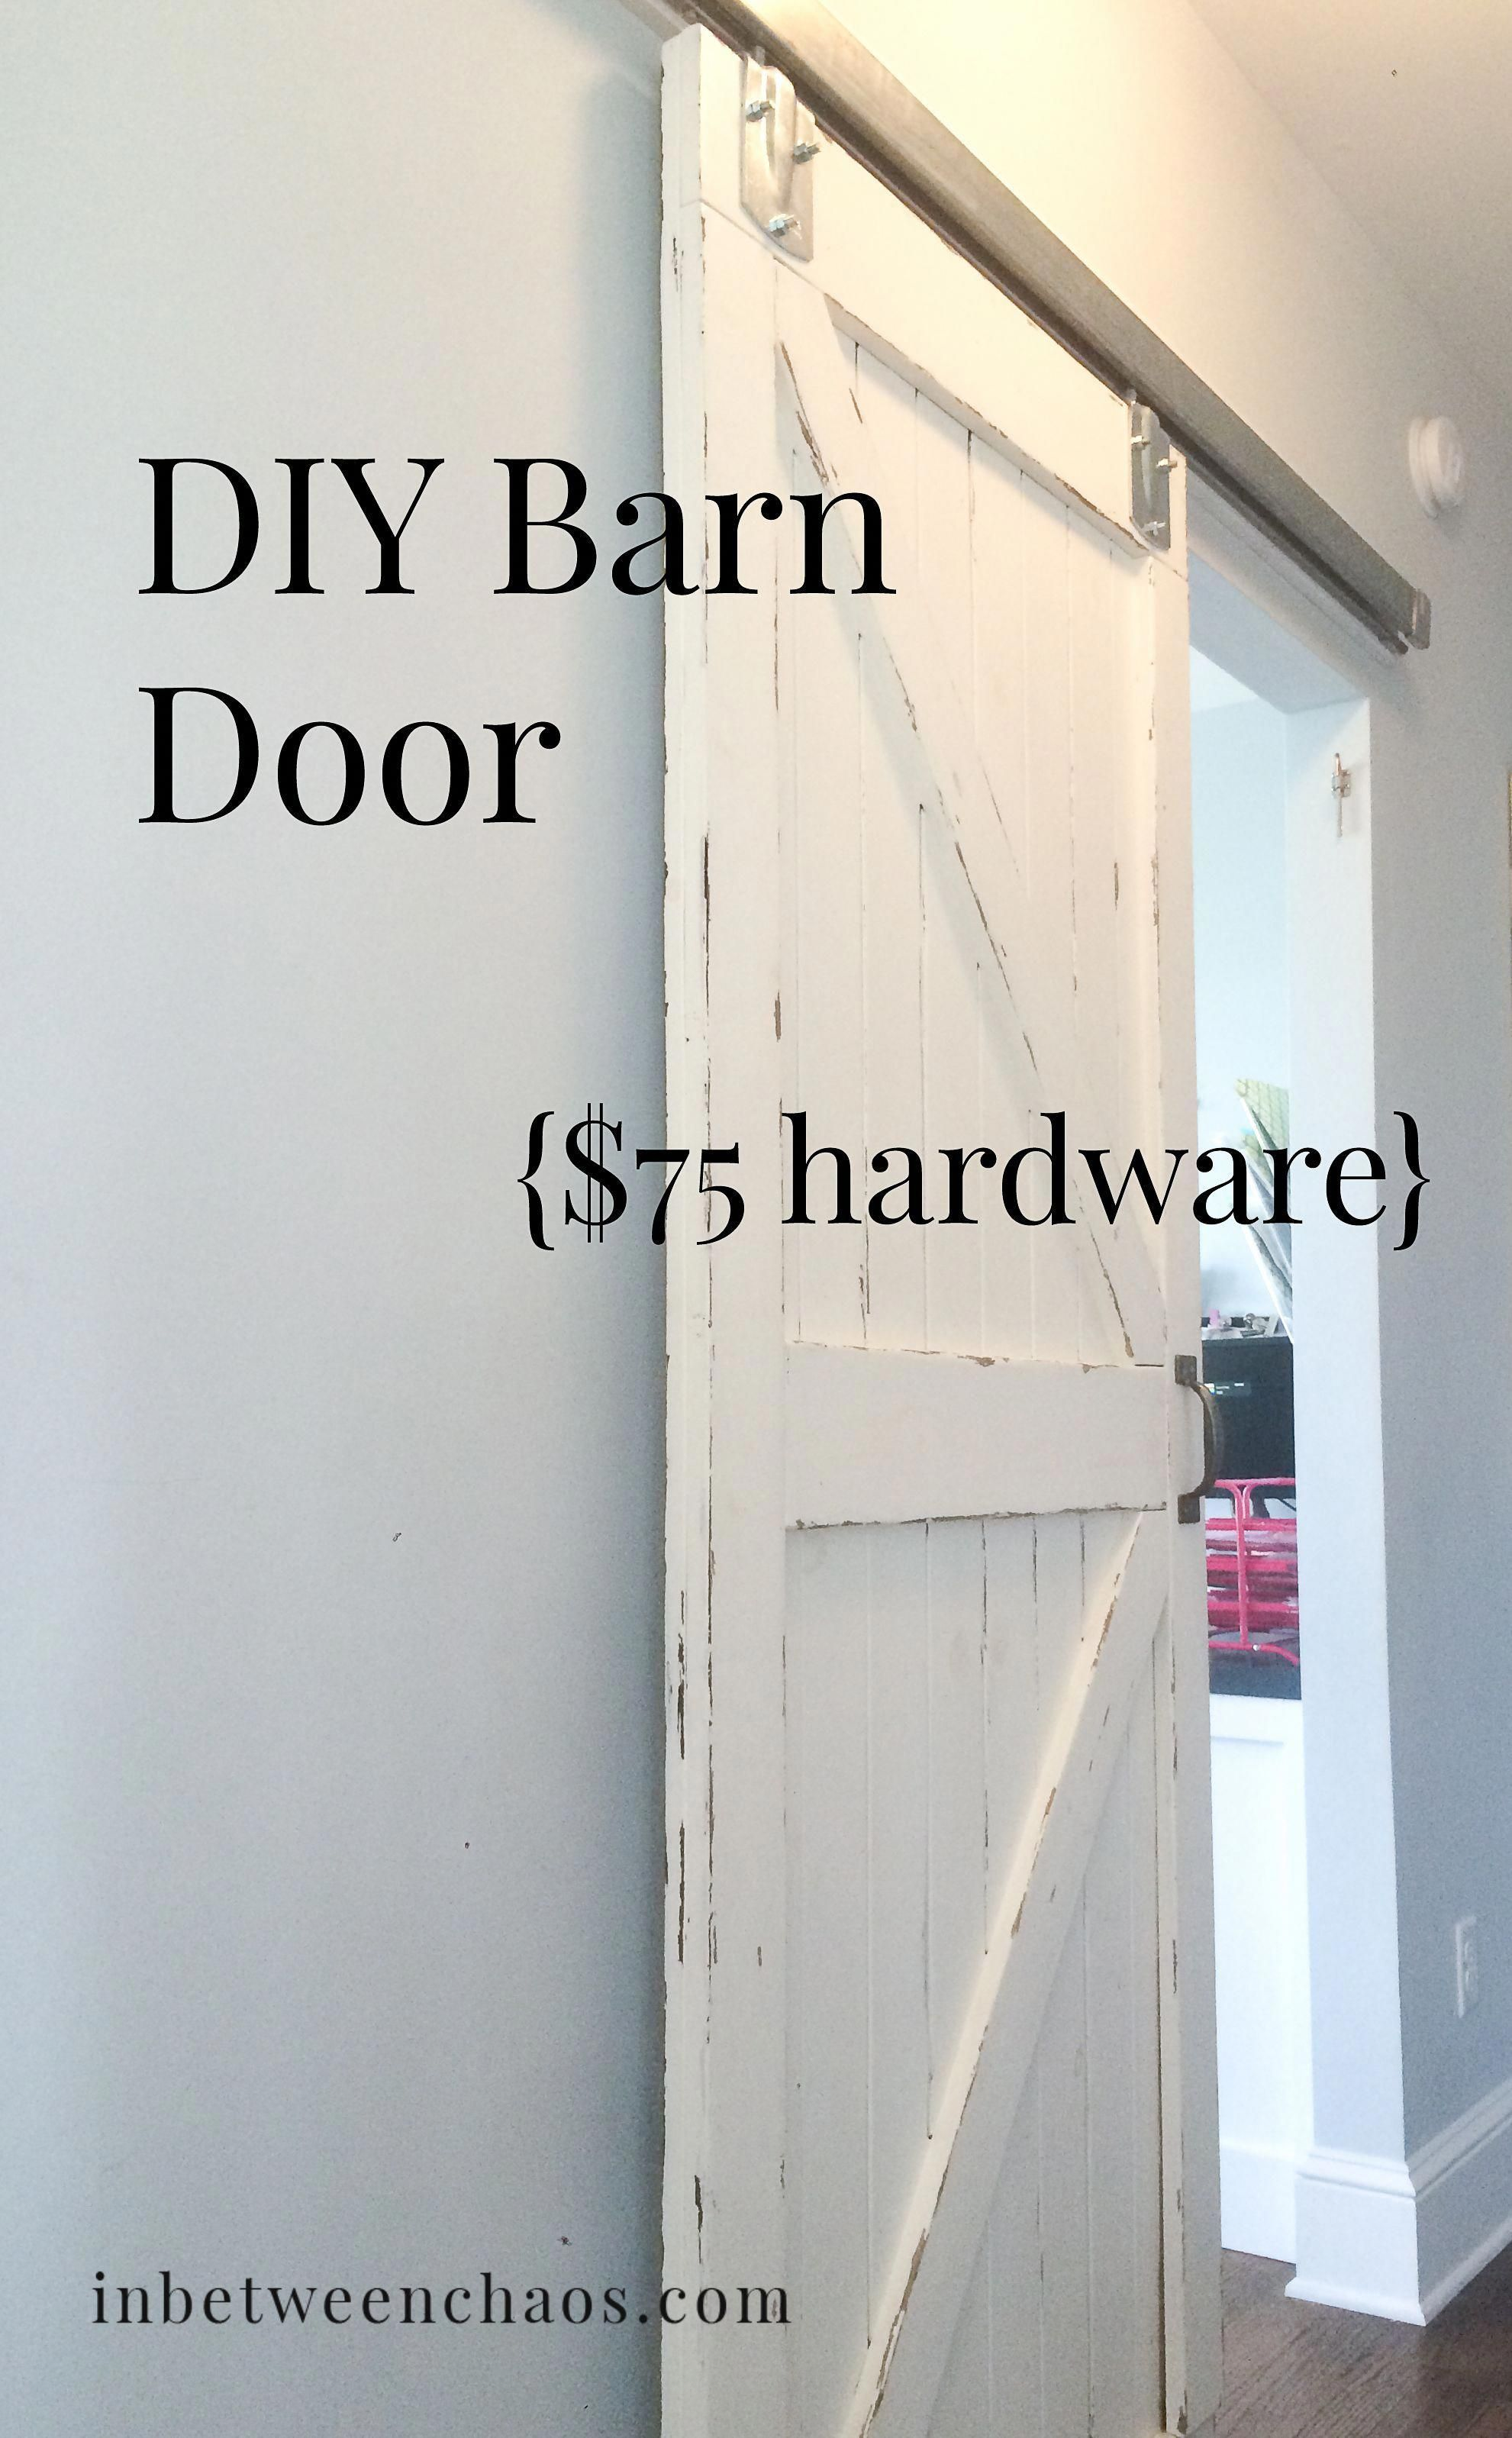 Rustic Sliding Barn Doors Dual Track Barn Door Hardware Small Barn Door Sliders Diy Sliding Barn Door Barn Door Diy Barn Door